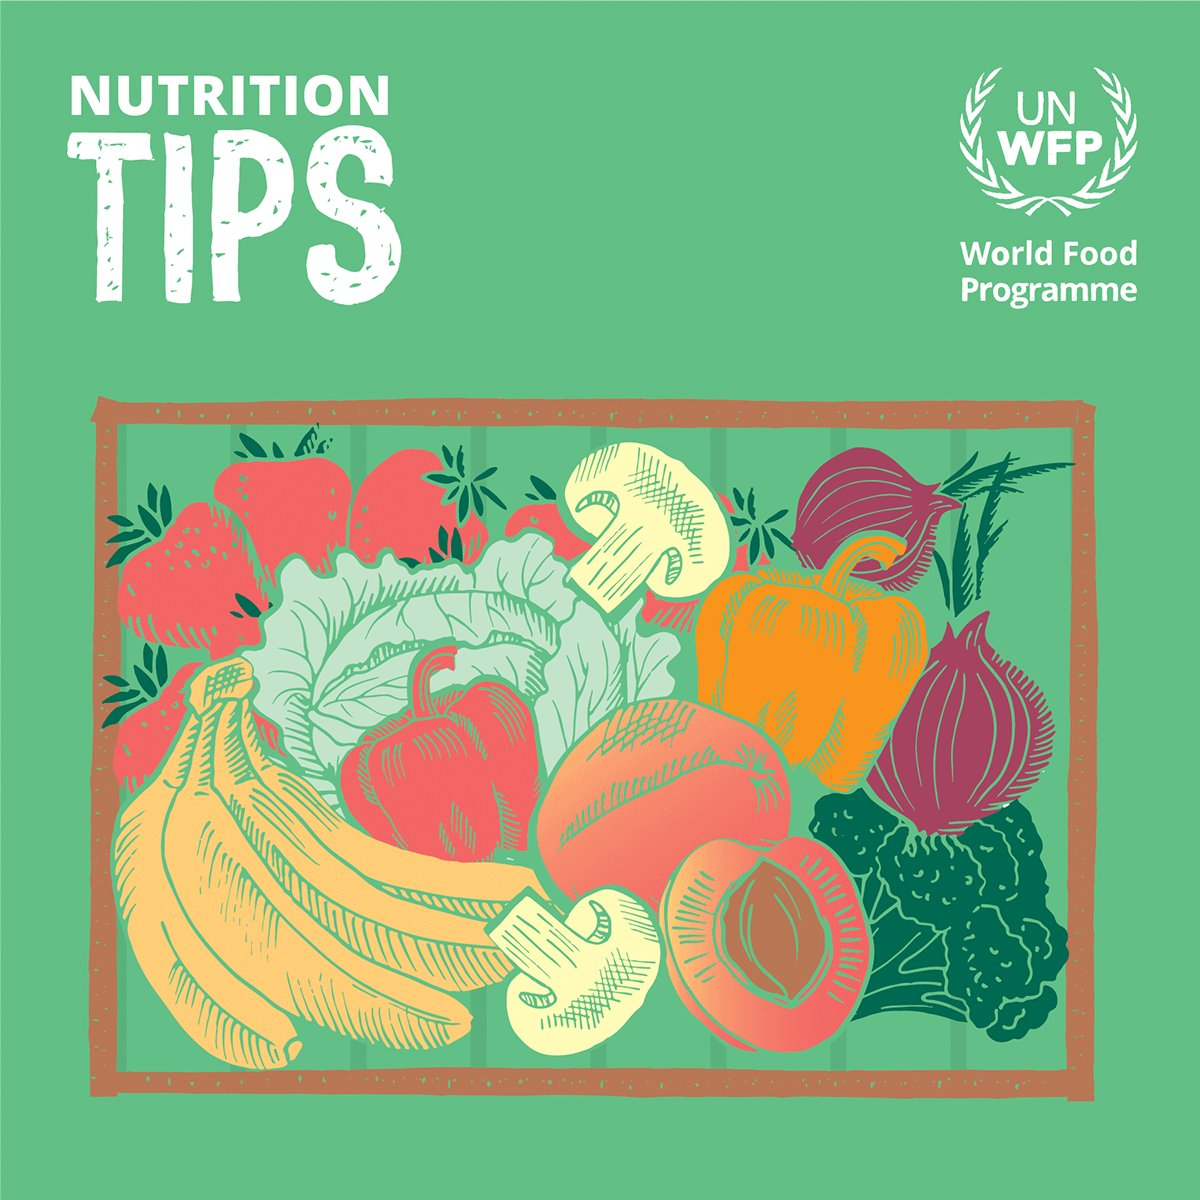 Blue & Purple🍇🍆 Green🥦🥬🥝🥒🍏 Red🍎🍉🍅🍒🍓🌶️ Orange & yellow 🍊🥕🍑🍋🌽🥭🍠  Colourful fruits and vegetables are rich in vitamins and antioxidants that help the body work well. A colourful plate can protect you from getting sick and help you fight off illness. #HelathyAtHome